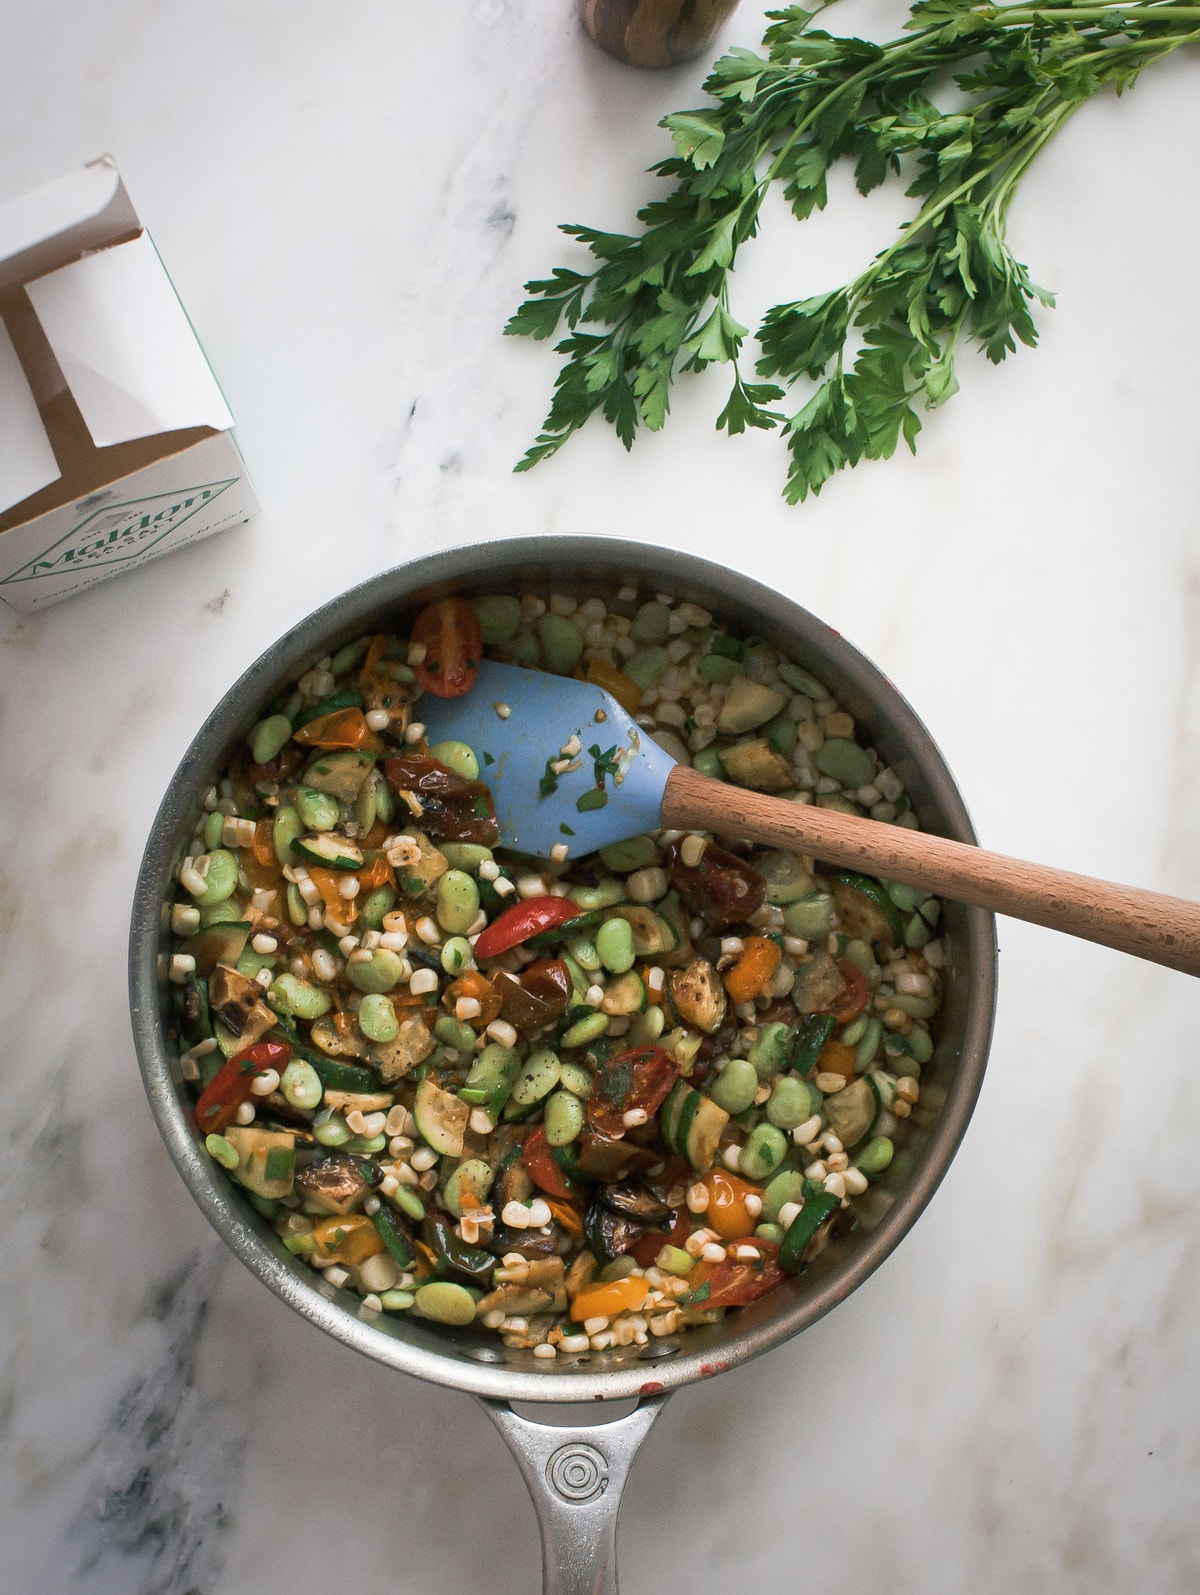 Late-Summer Succotash with White Bean Puree and Brown Butter